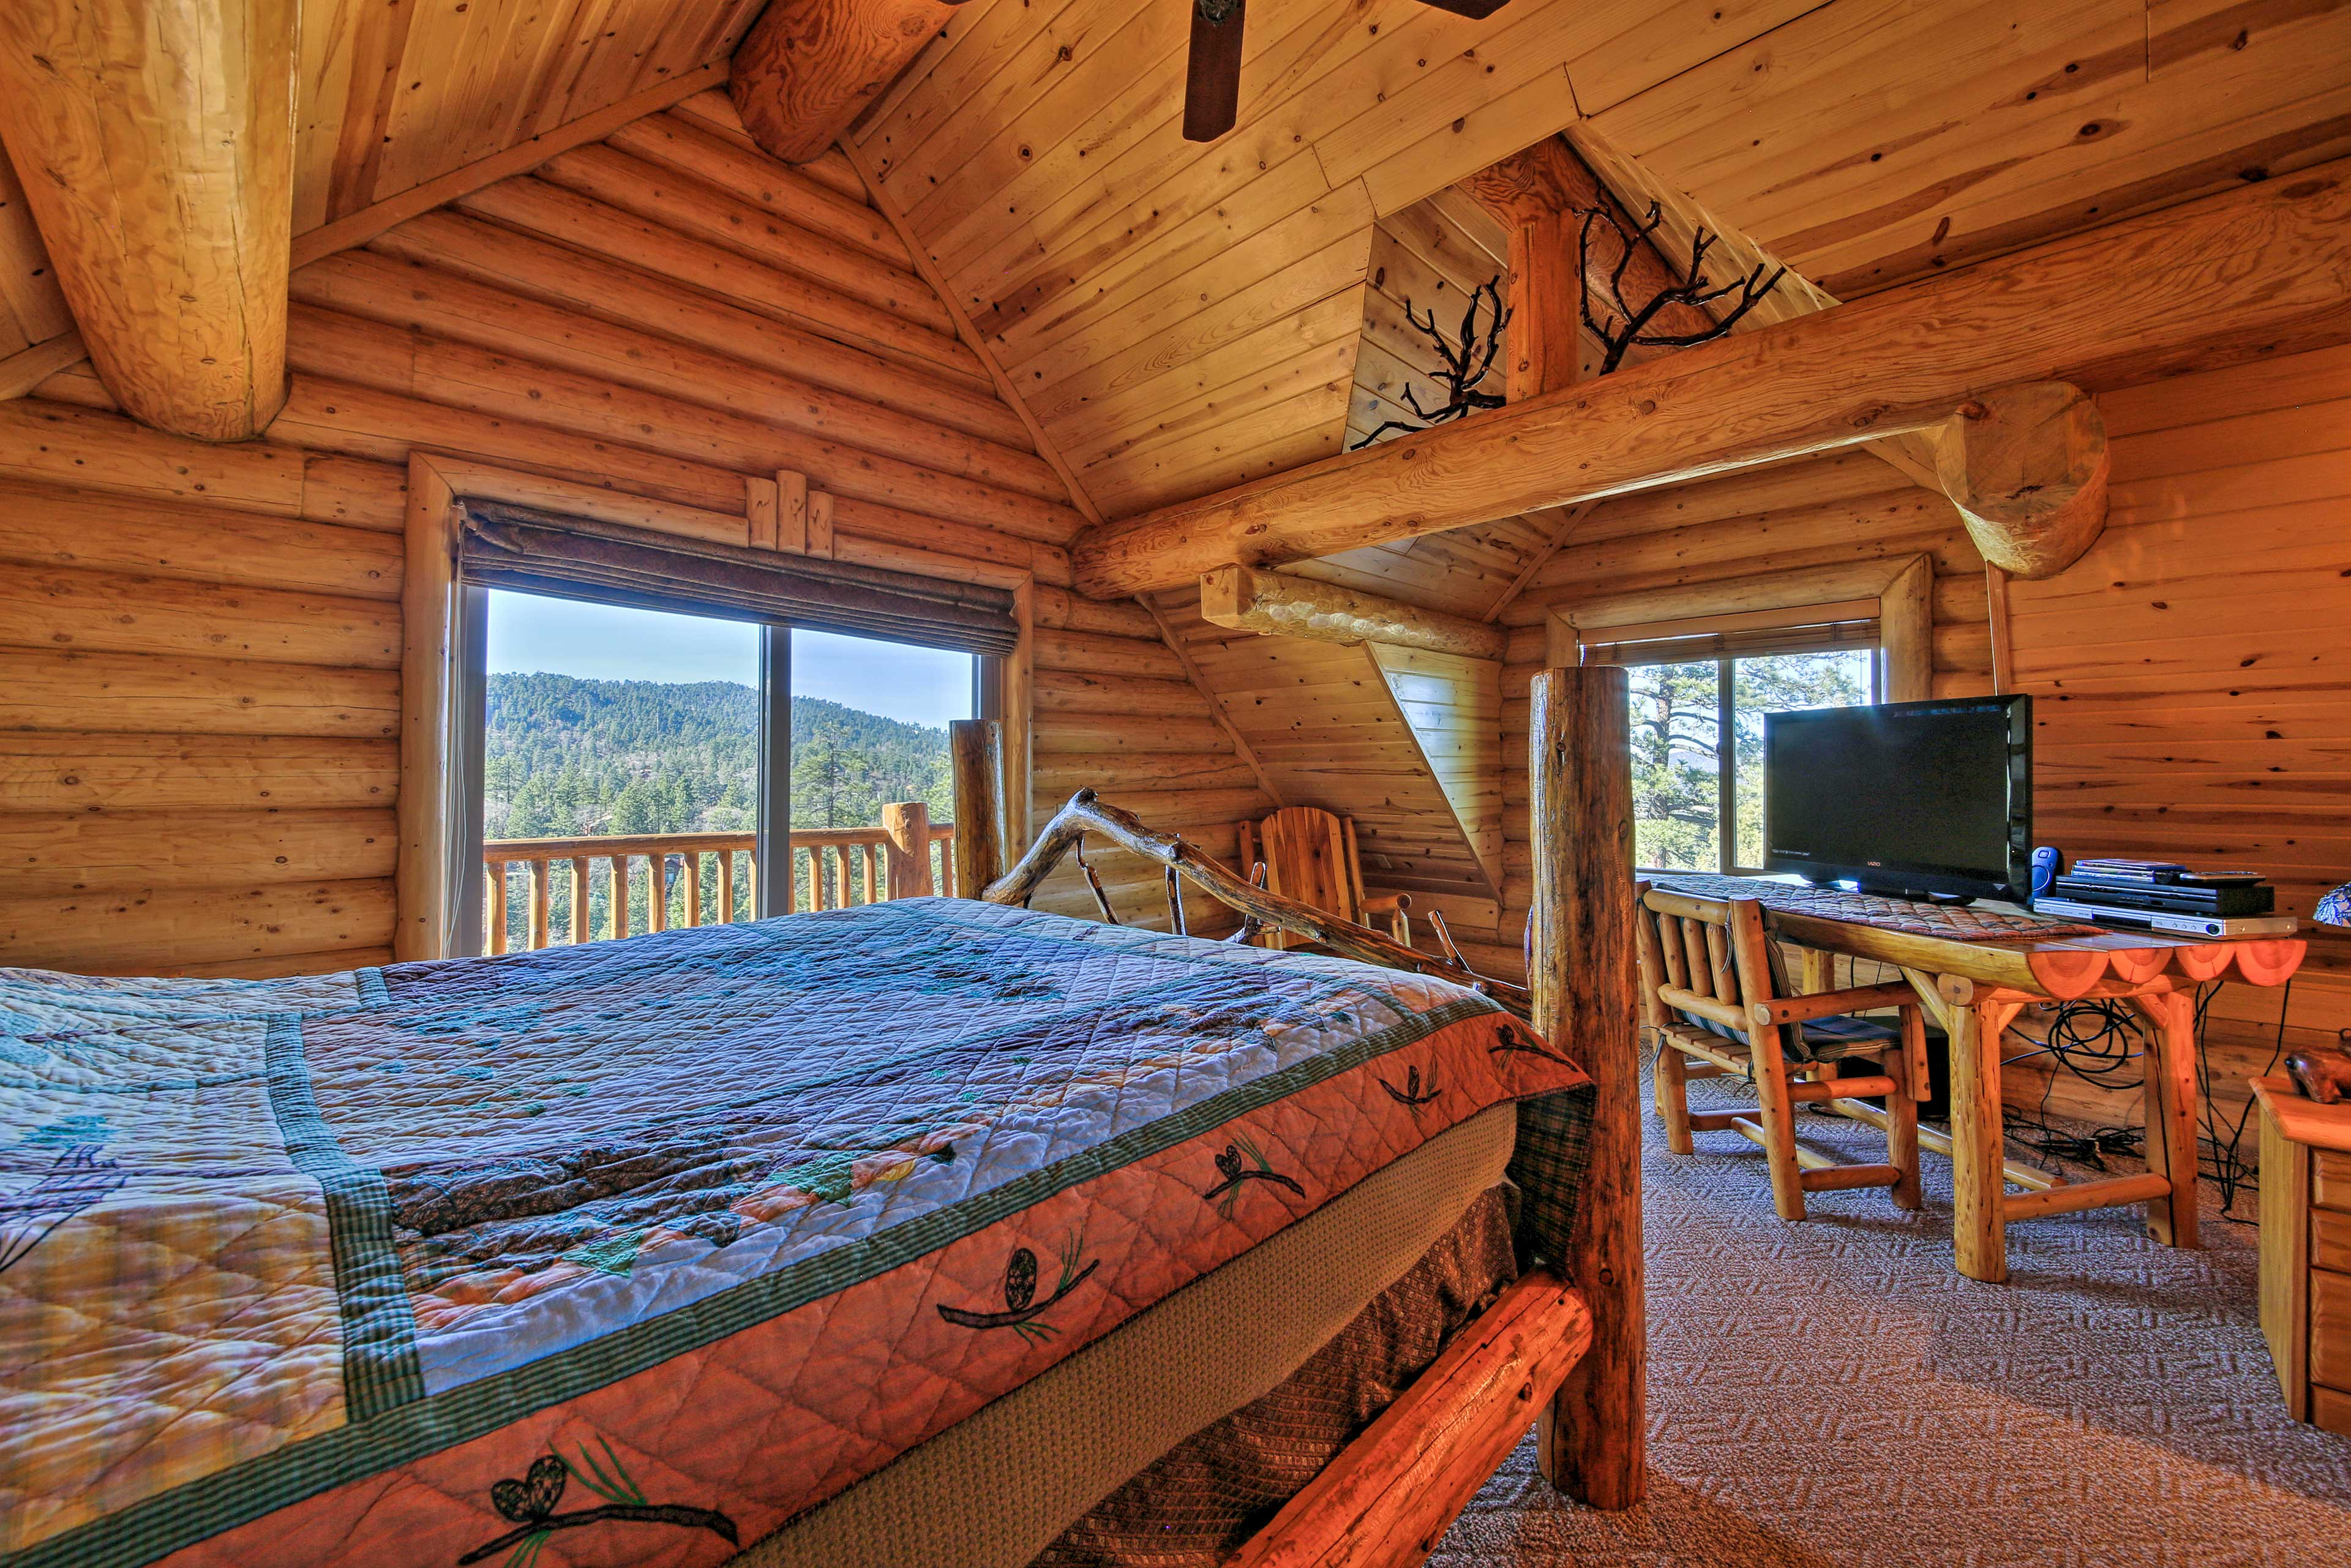 Each bedroom contains a comfortable queen-sized bed.